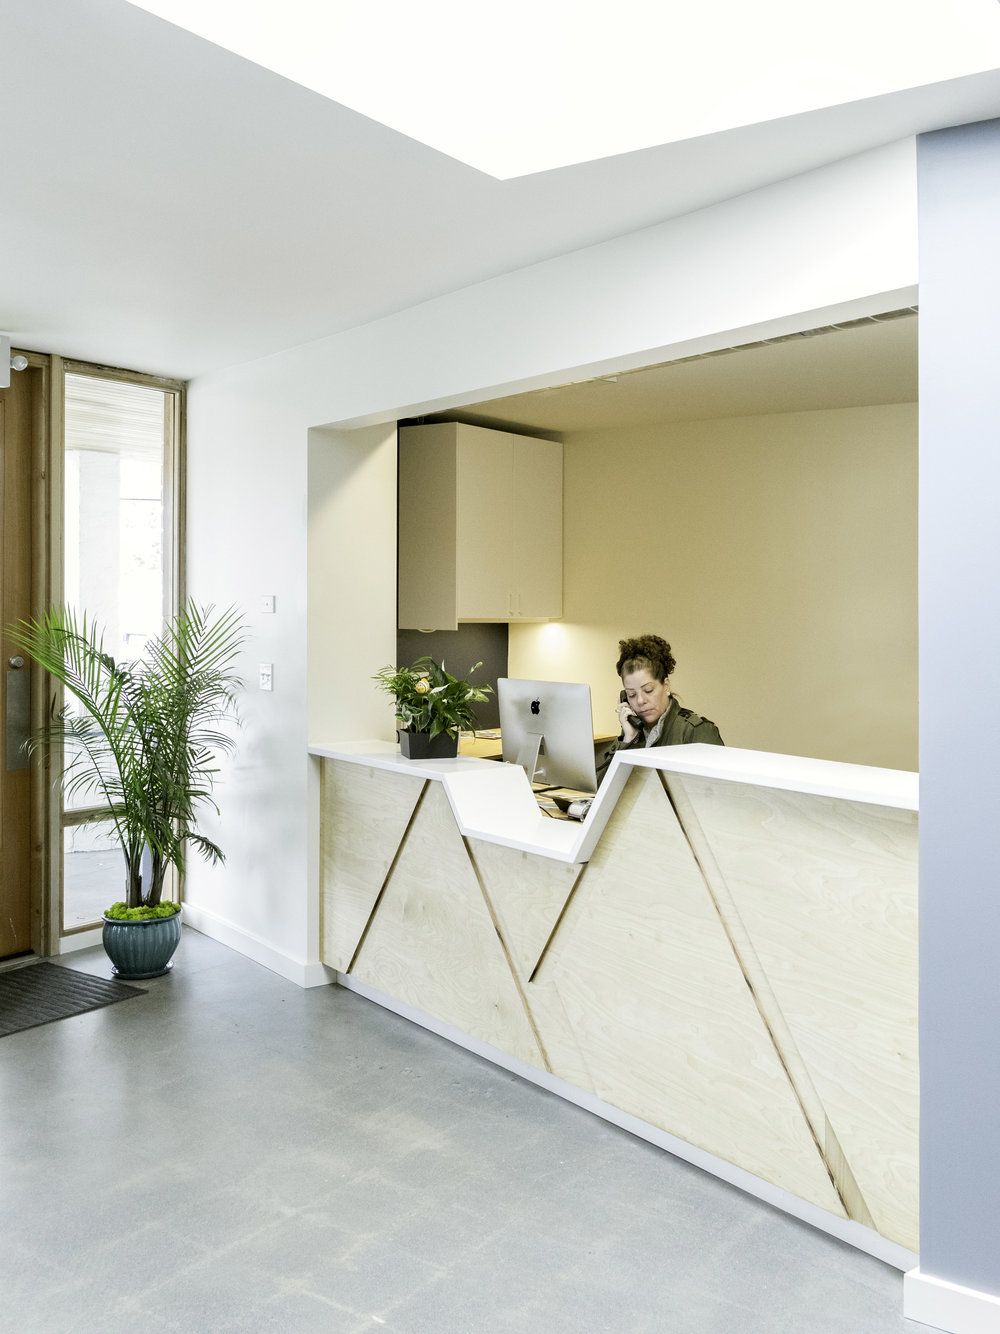 The reception desk provides a lower height section for kids to engage with the staff and the plywood facing picks up details from the Clinic logo.